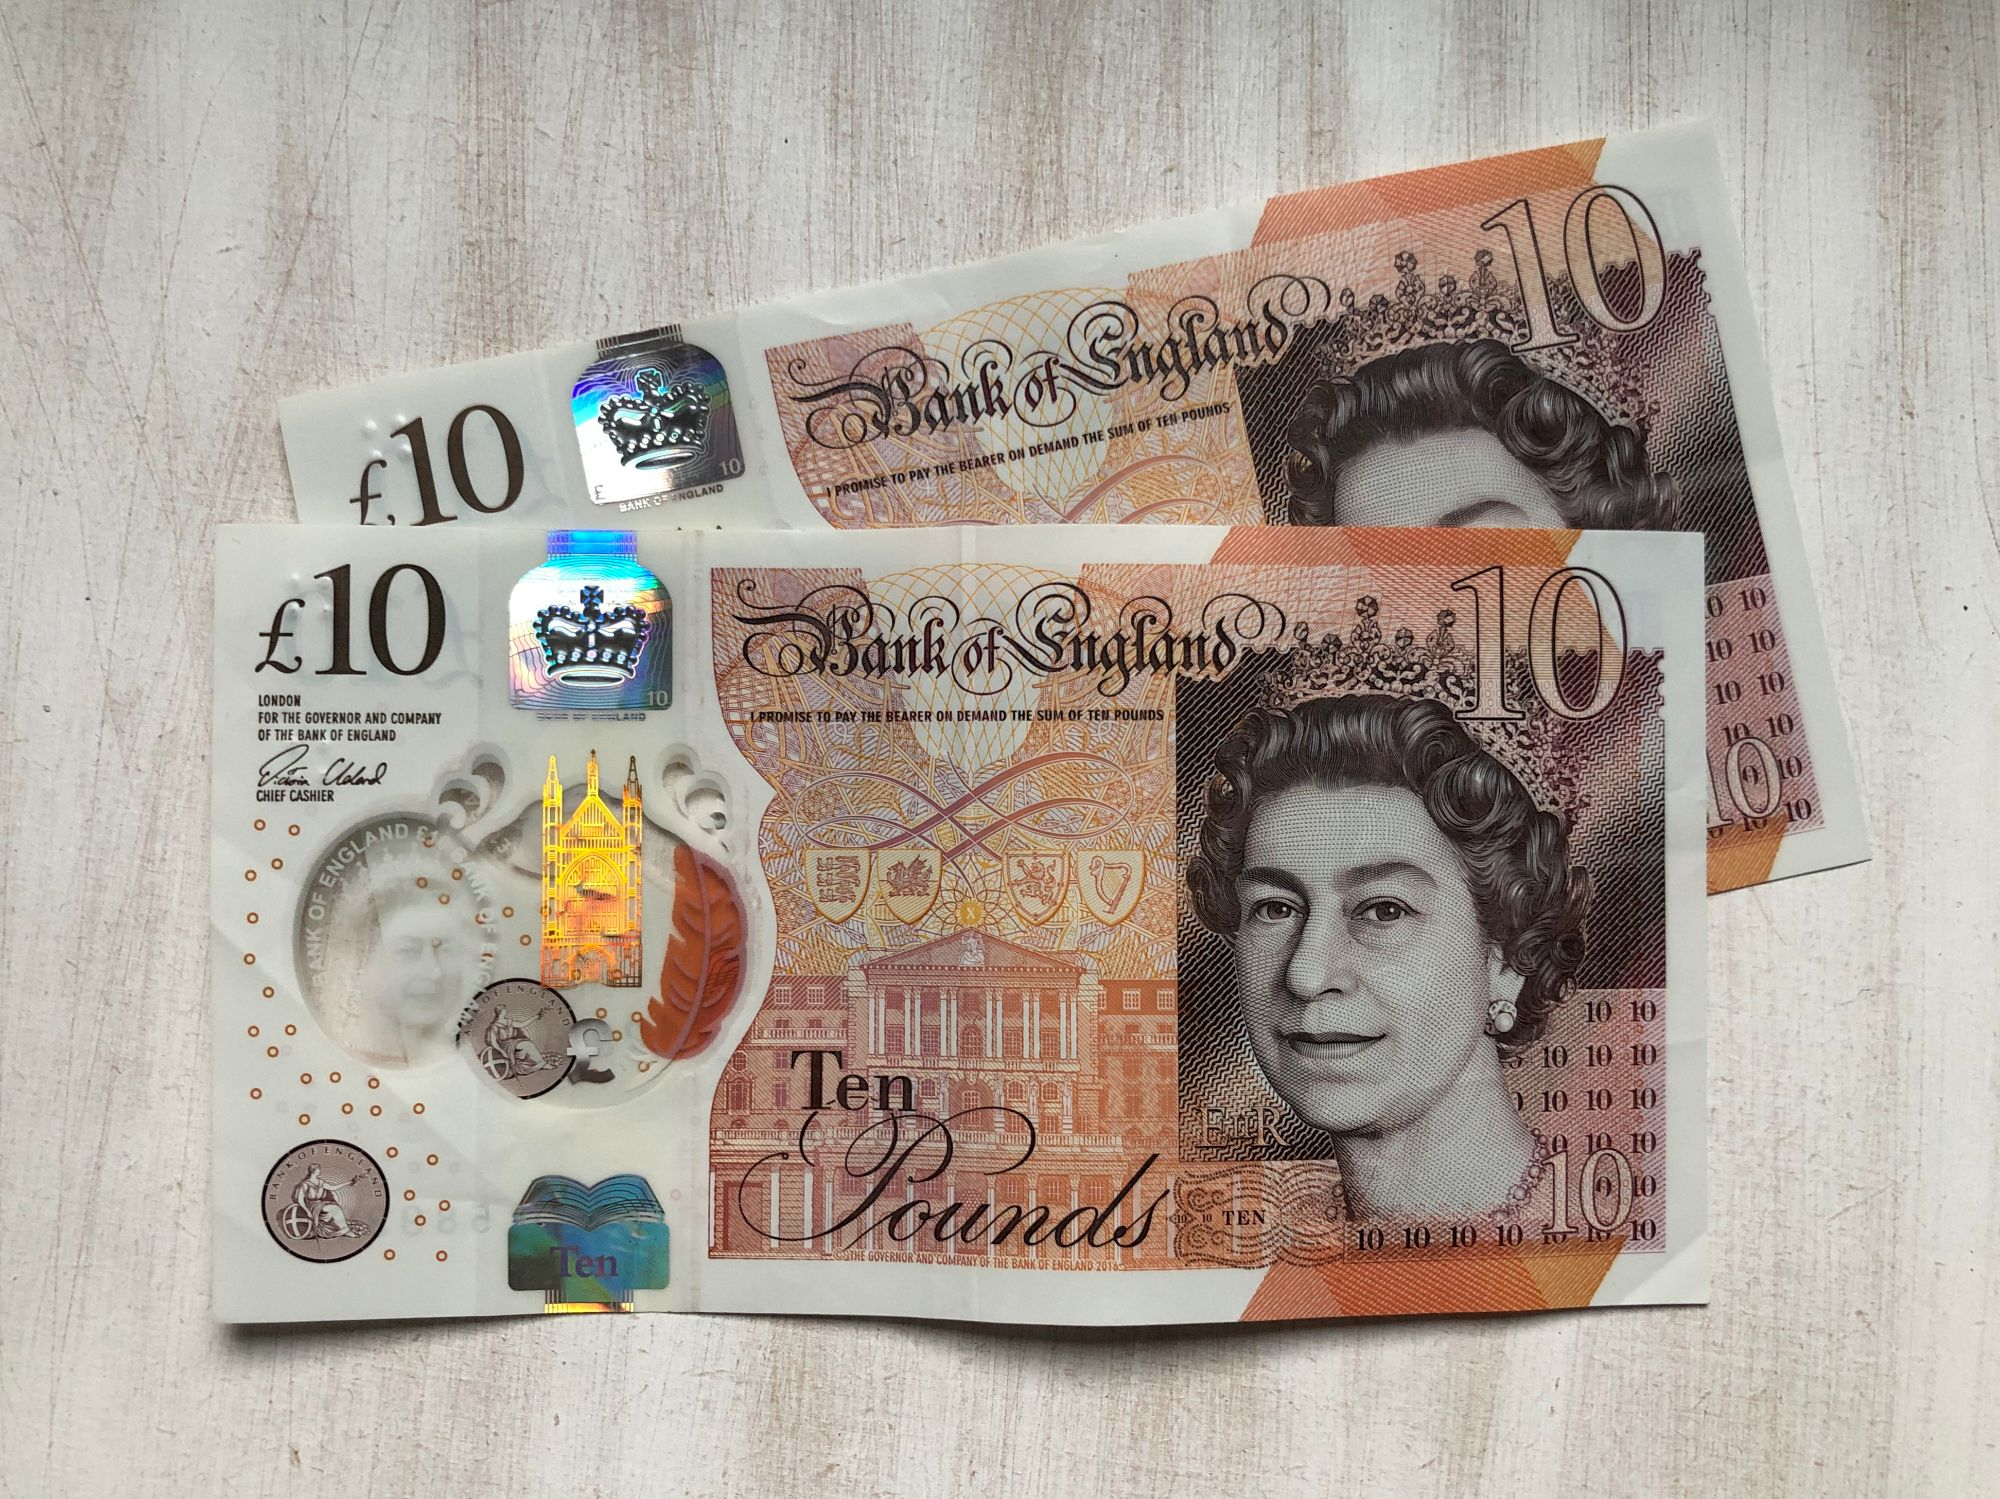 Free stock images money bloggers blog photos ten pound note £10 ten